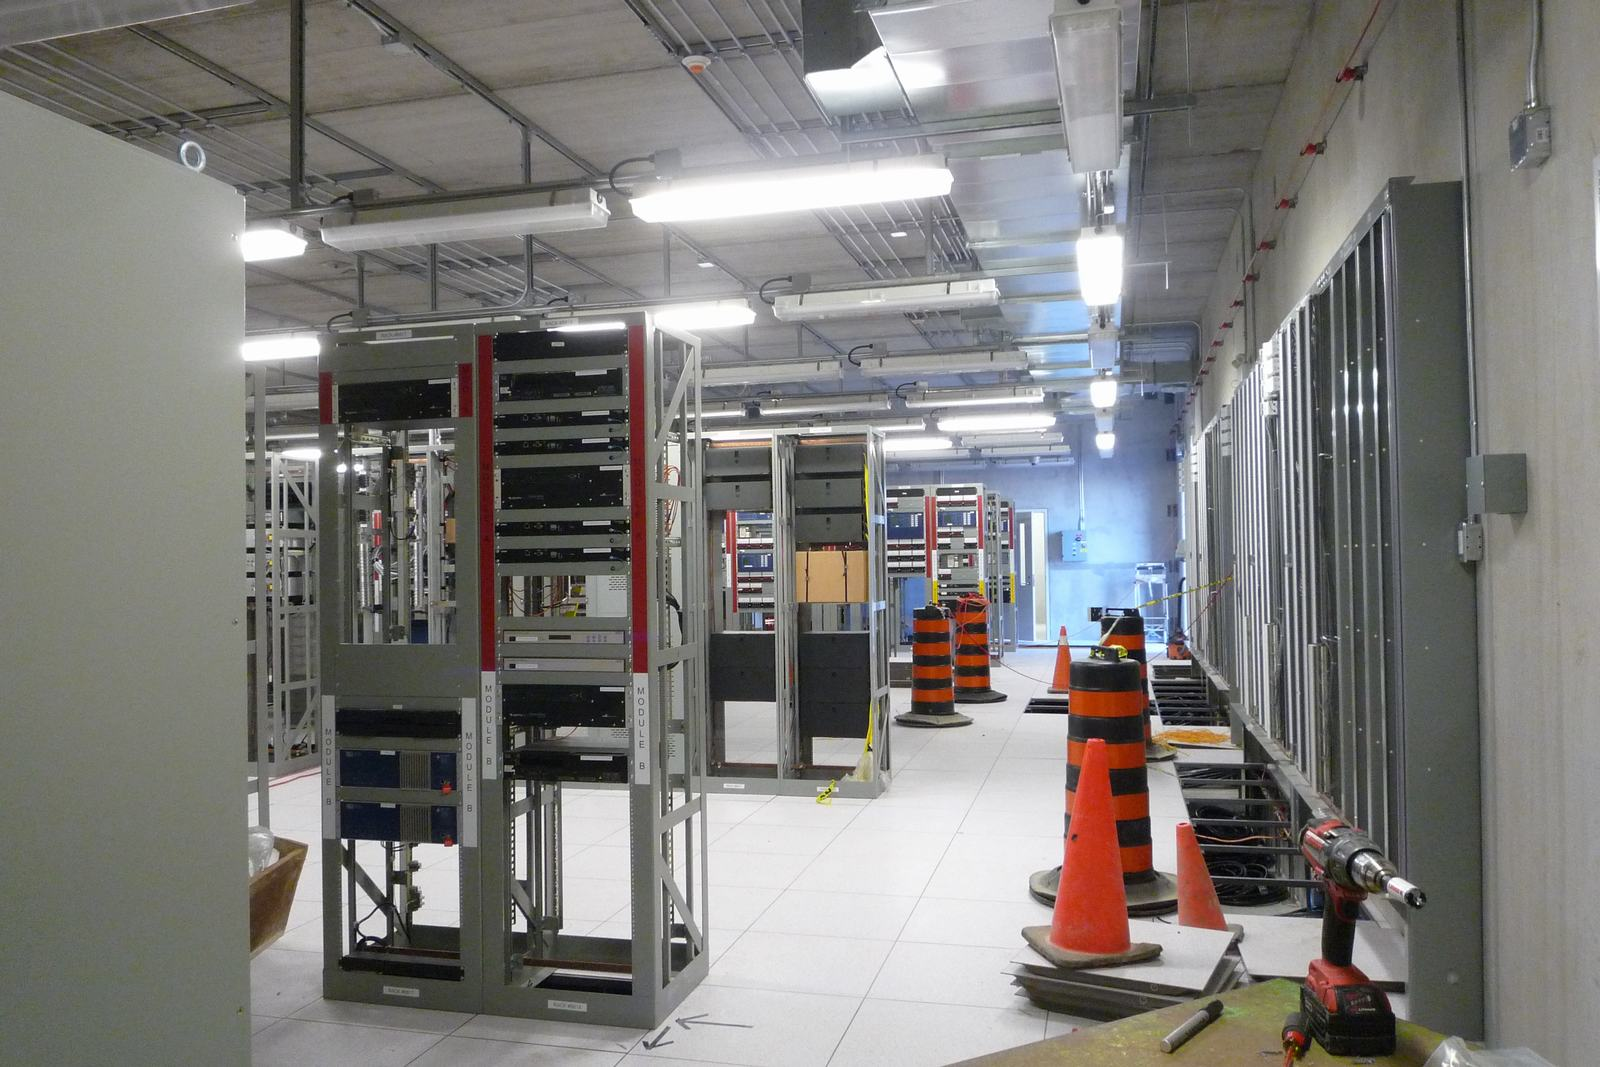 Hydro One Transfer Station Interior (14117).JPG